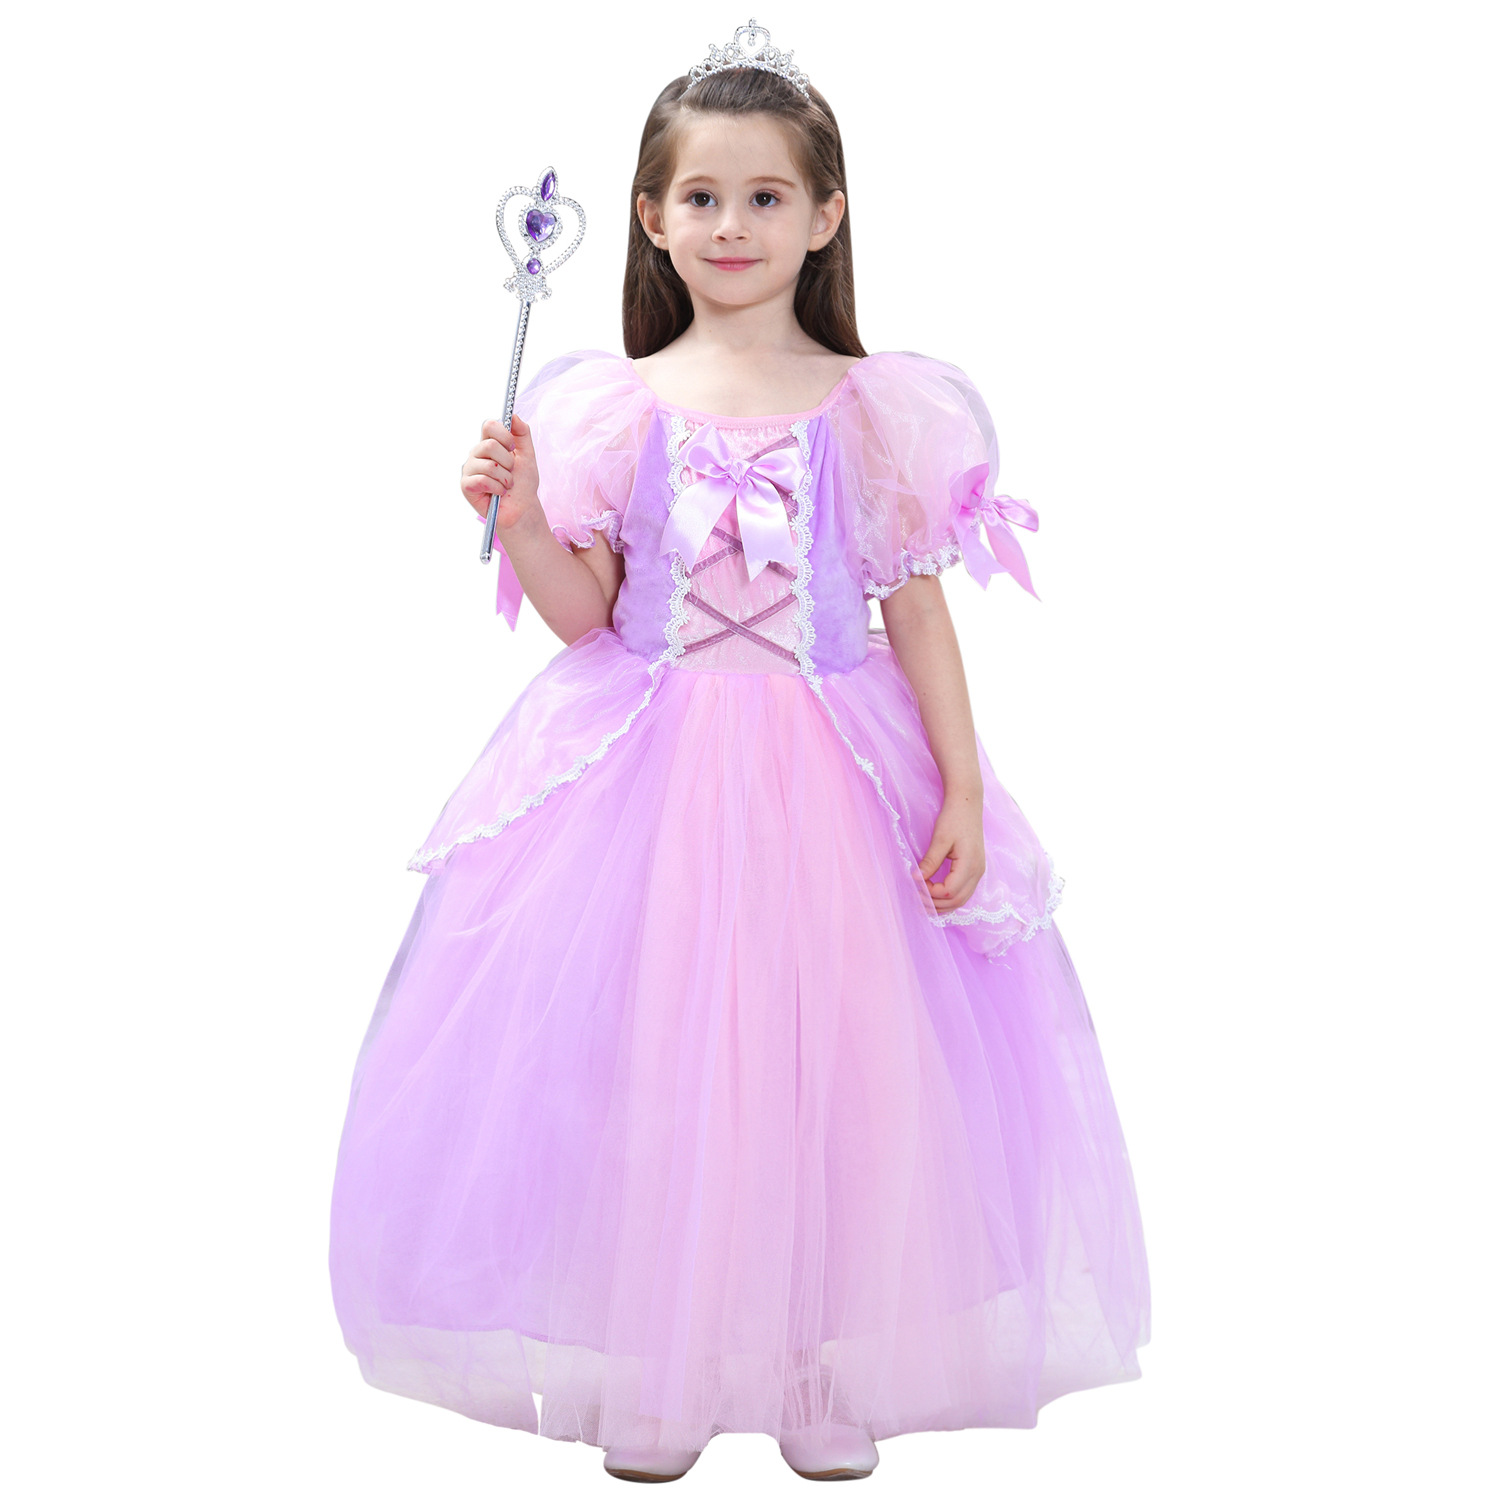 2018 New Sofia Cosplay Princess Summer Dresses Girls  Costume Girls Halloween Birthday Party Dress